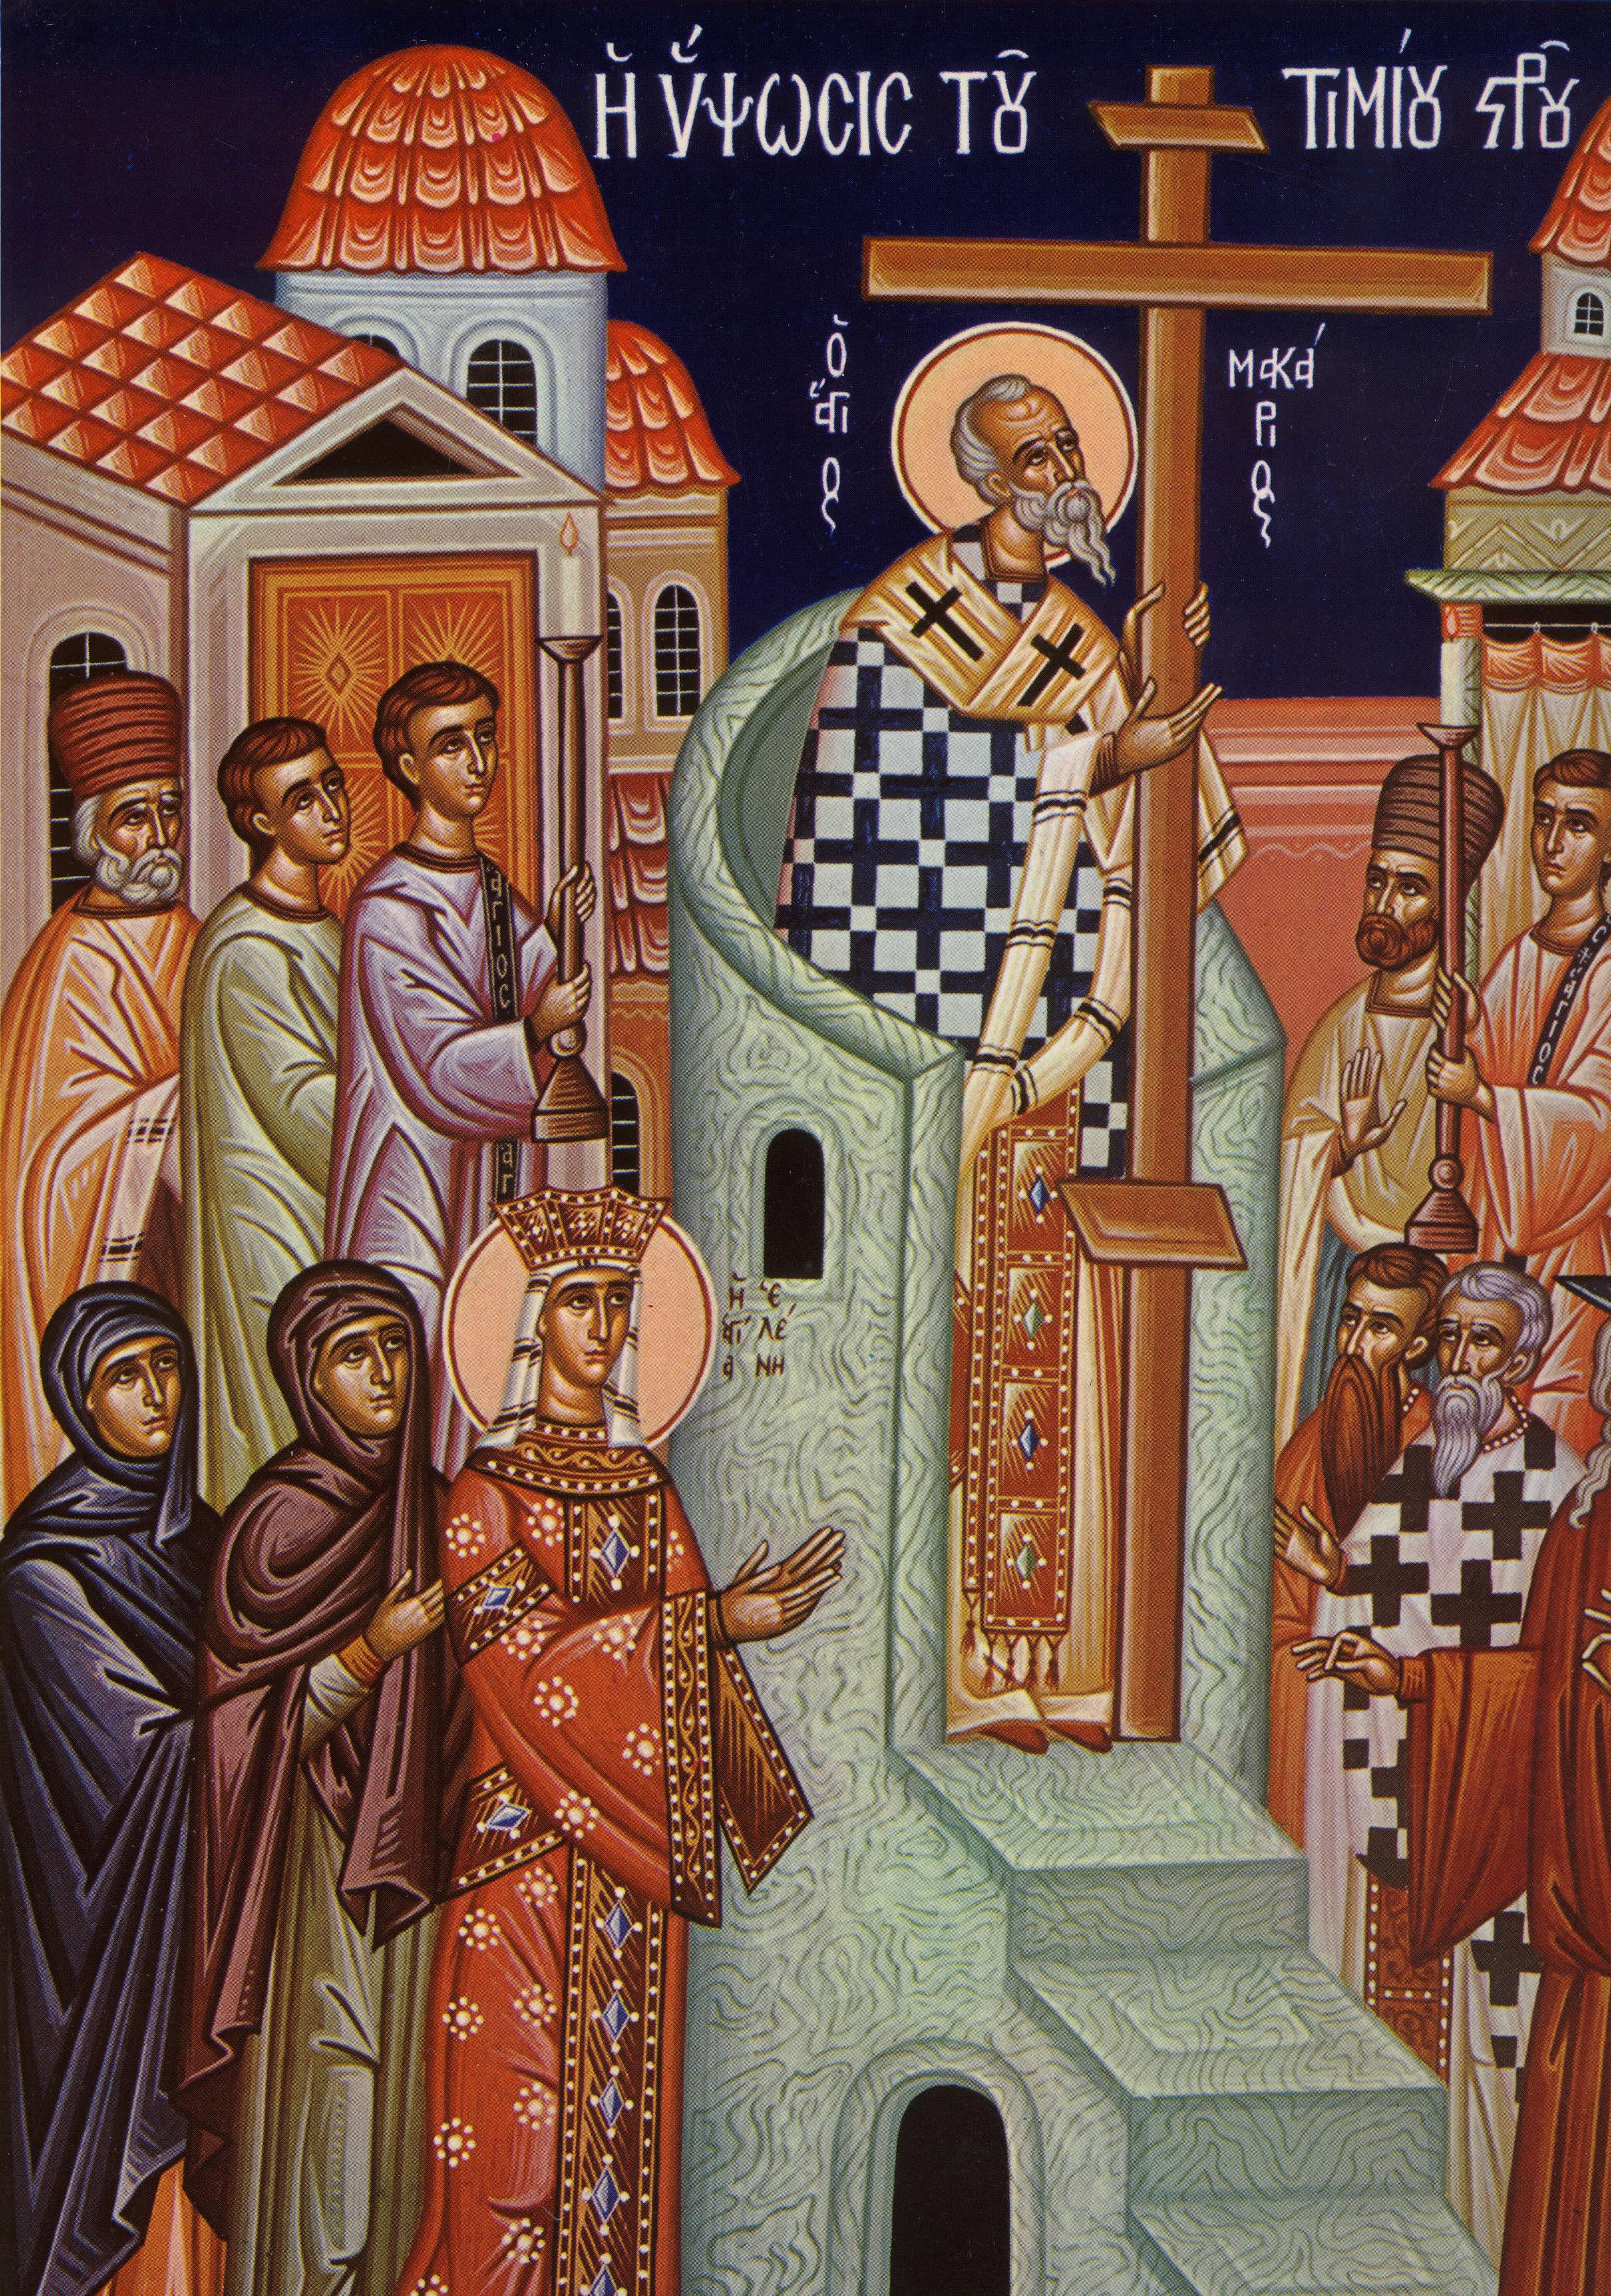 Sept 20; Sunday after the Exaltation of the Cross